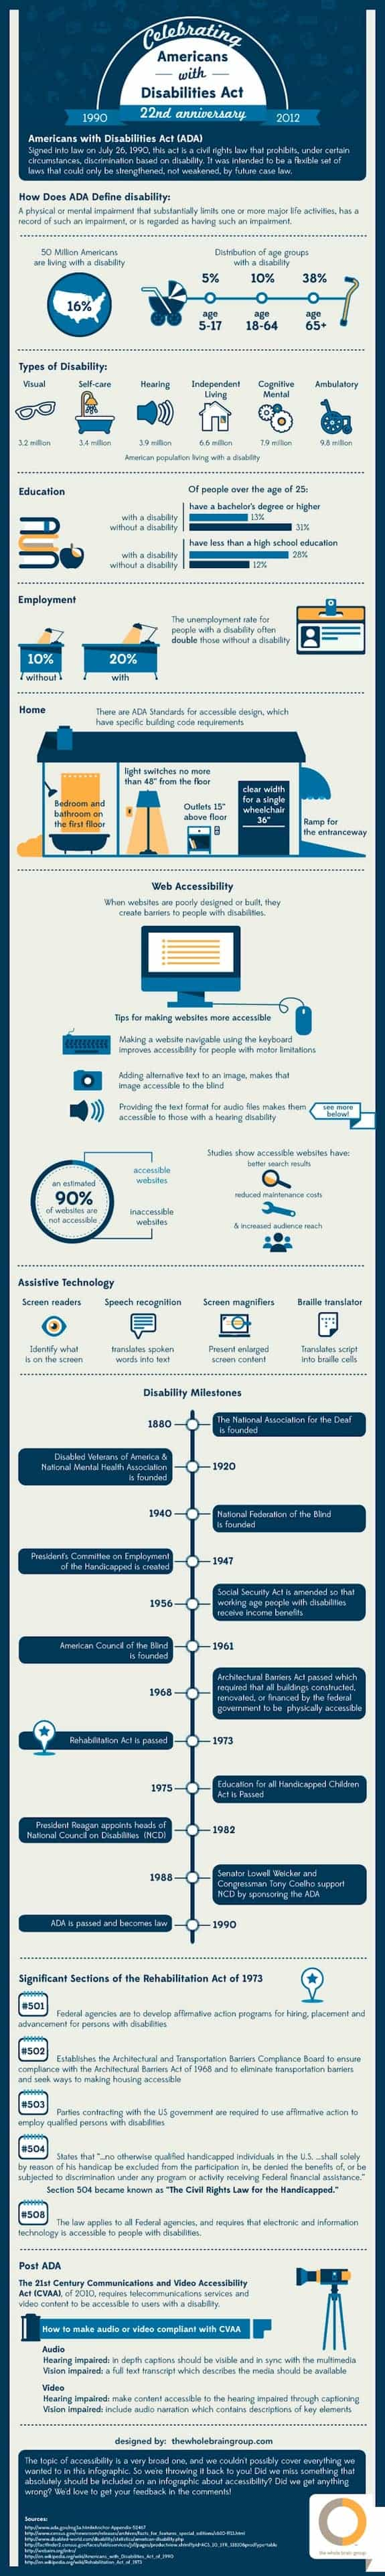 Americans With Disabilities Act 22nd Anniversary [infographic]